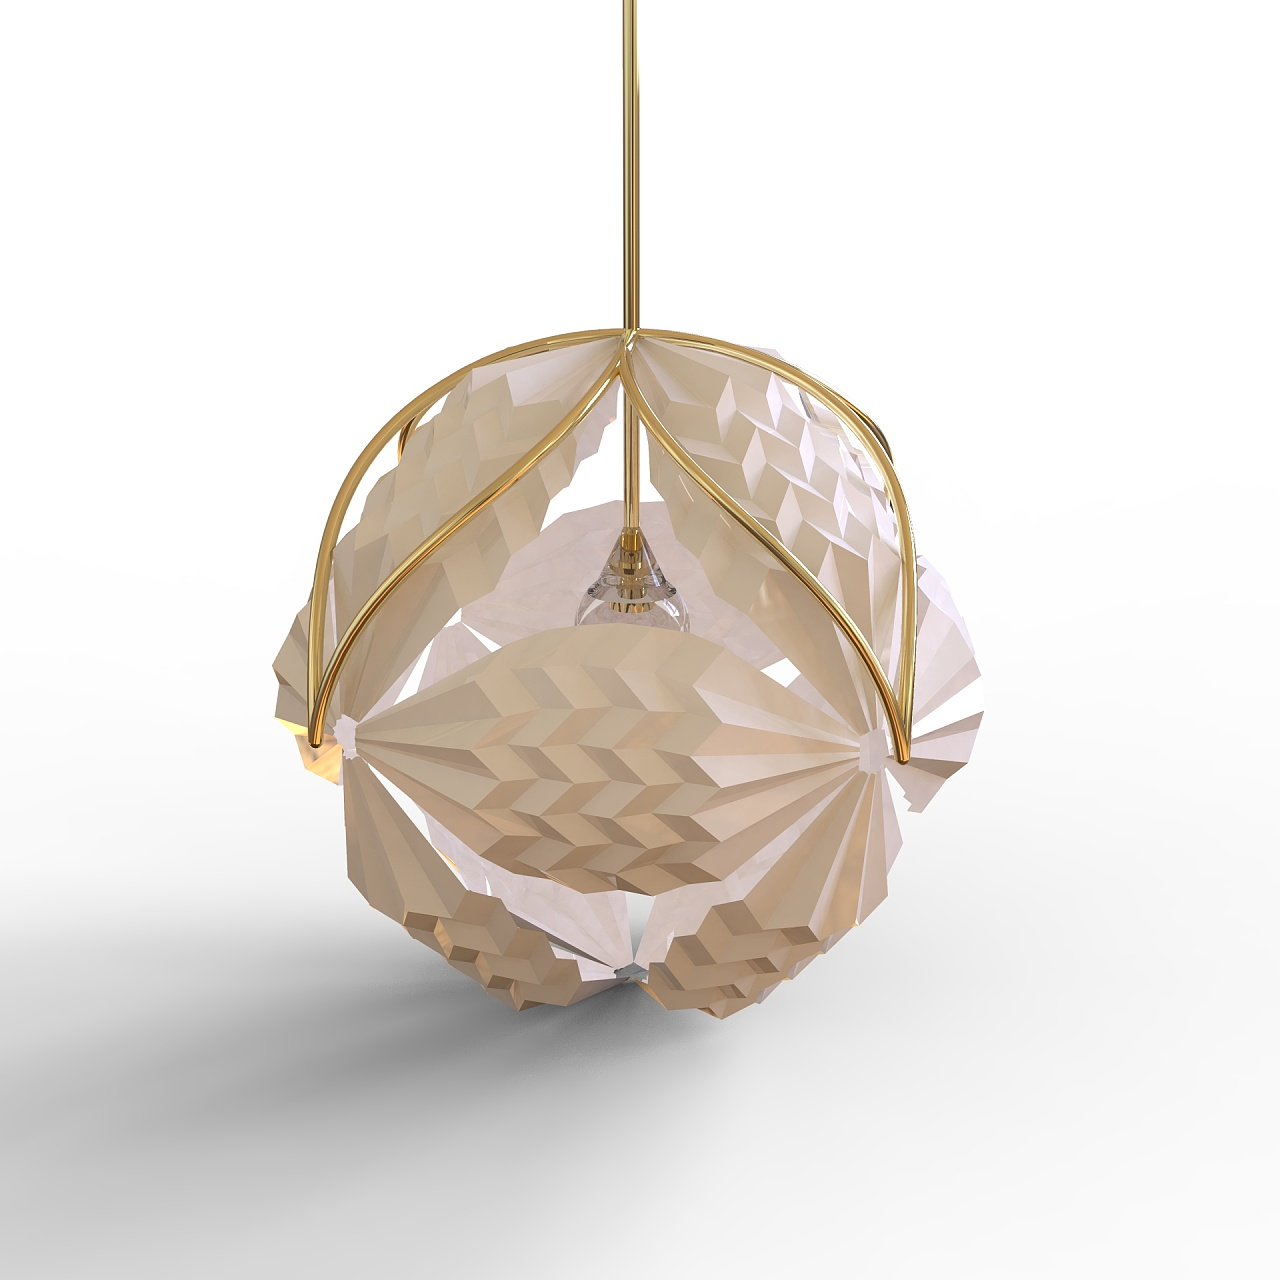 Chinese font design-Lamps and lanterns with various patterns made of embroidered ball elements